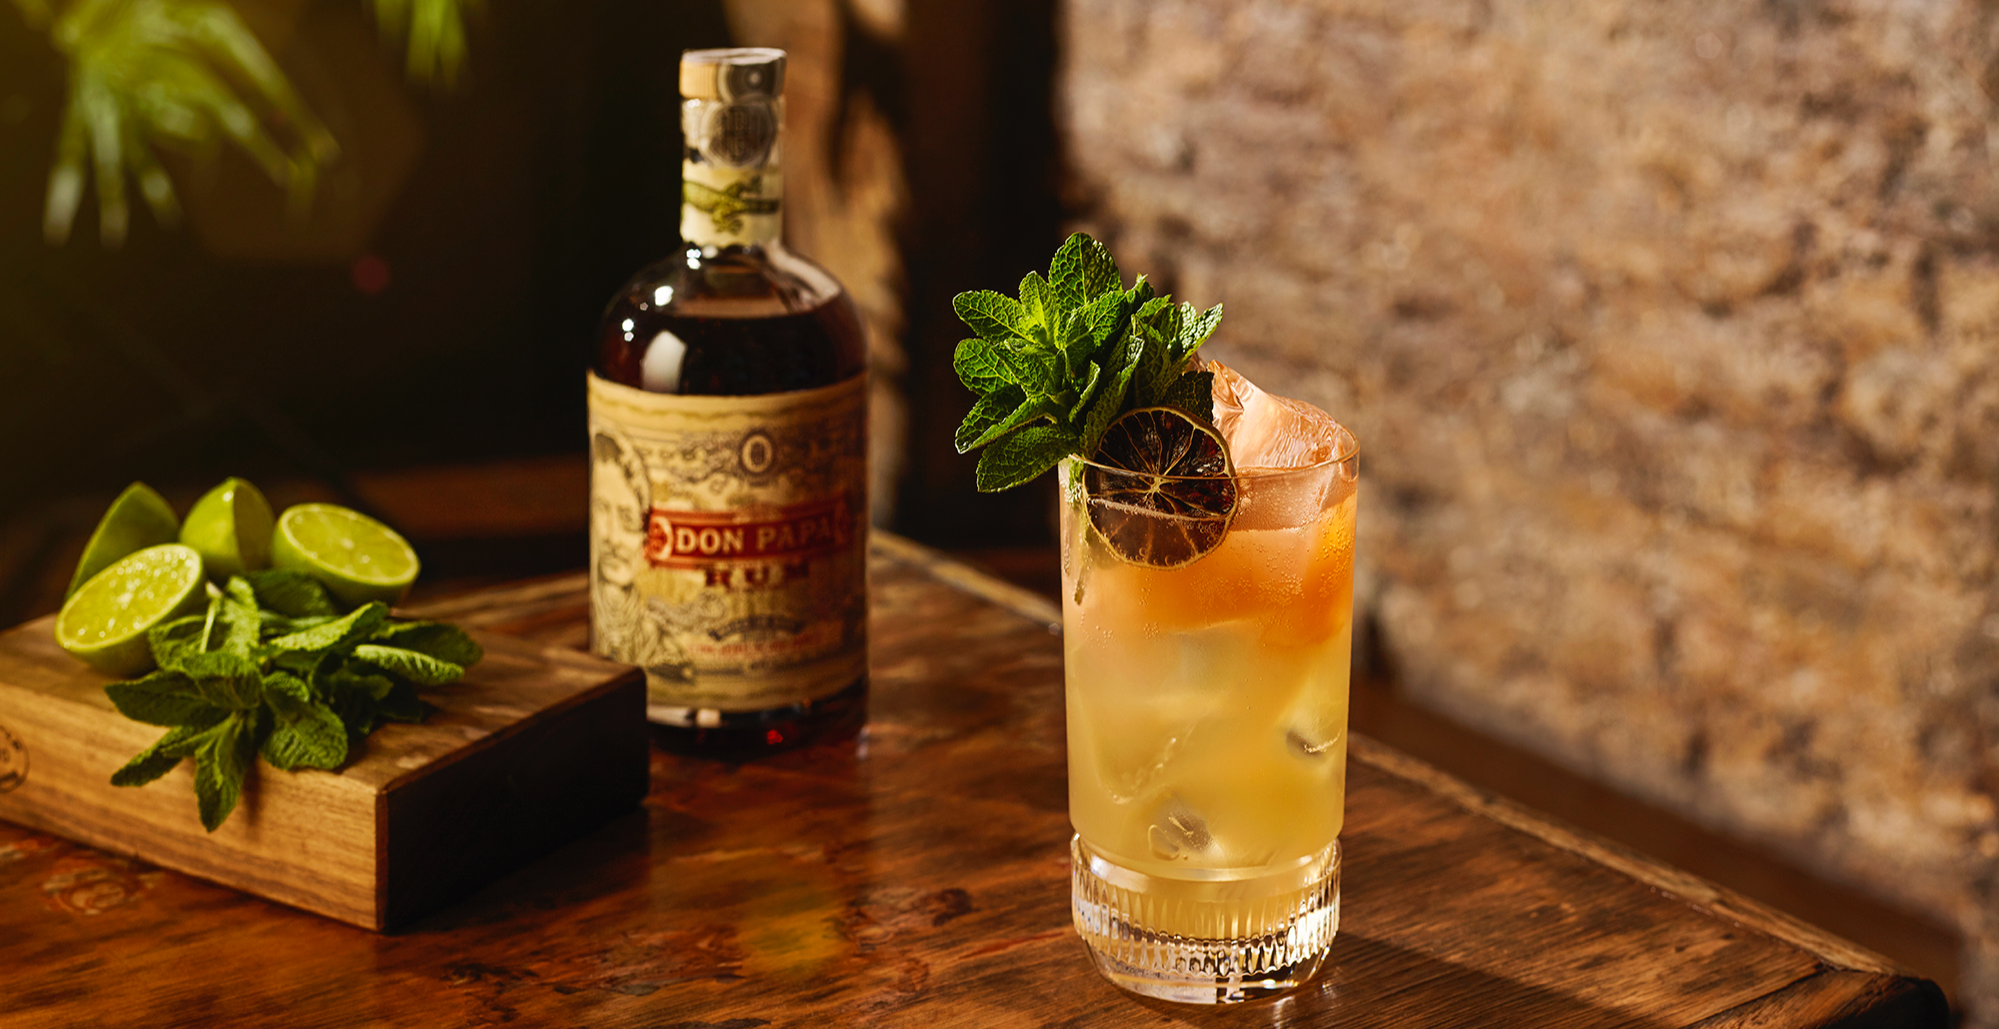 Casa Sugarlandia - Don Papa Cocktail Masterclass